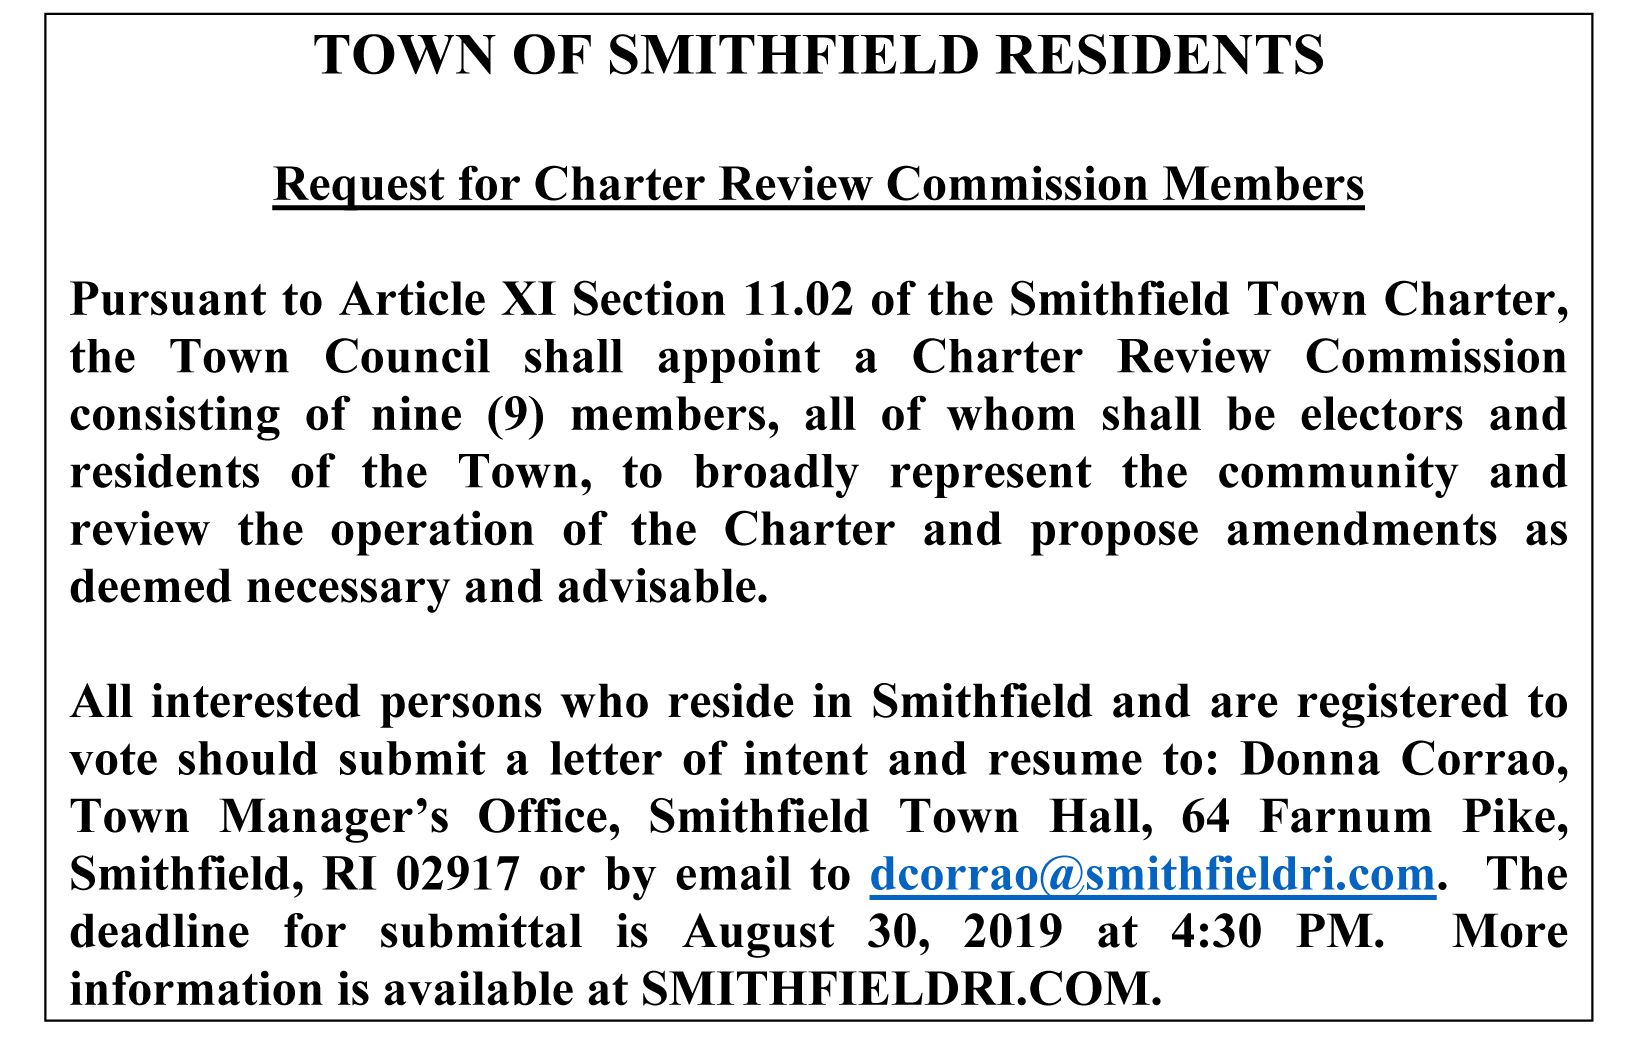 All interested persons should submit a letter of intent and resume to: Donna Corrao, Town Manager's Office, Smithfield Town Hall, 64 Farnum Pike, Smithfield, RI 02917 or by email to dcorrao@smithfieldri.com. The deadline for submittal is Friday, August 30, 2019 at 4:30 PM.